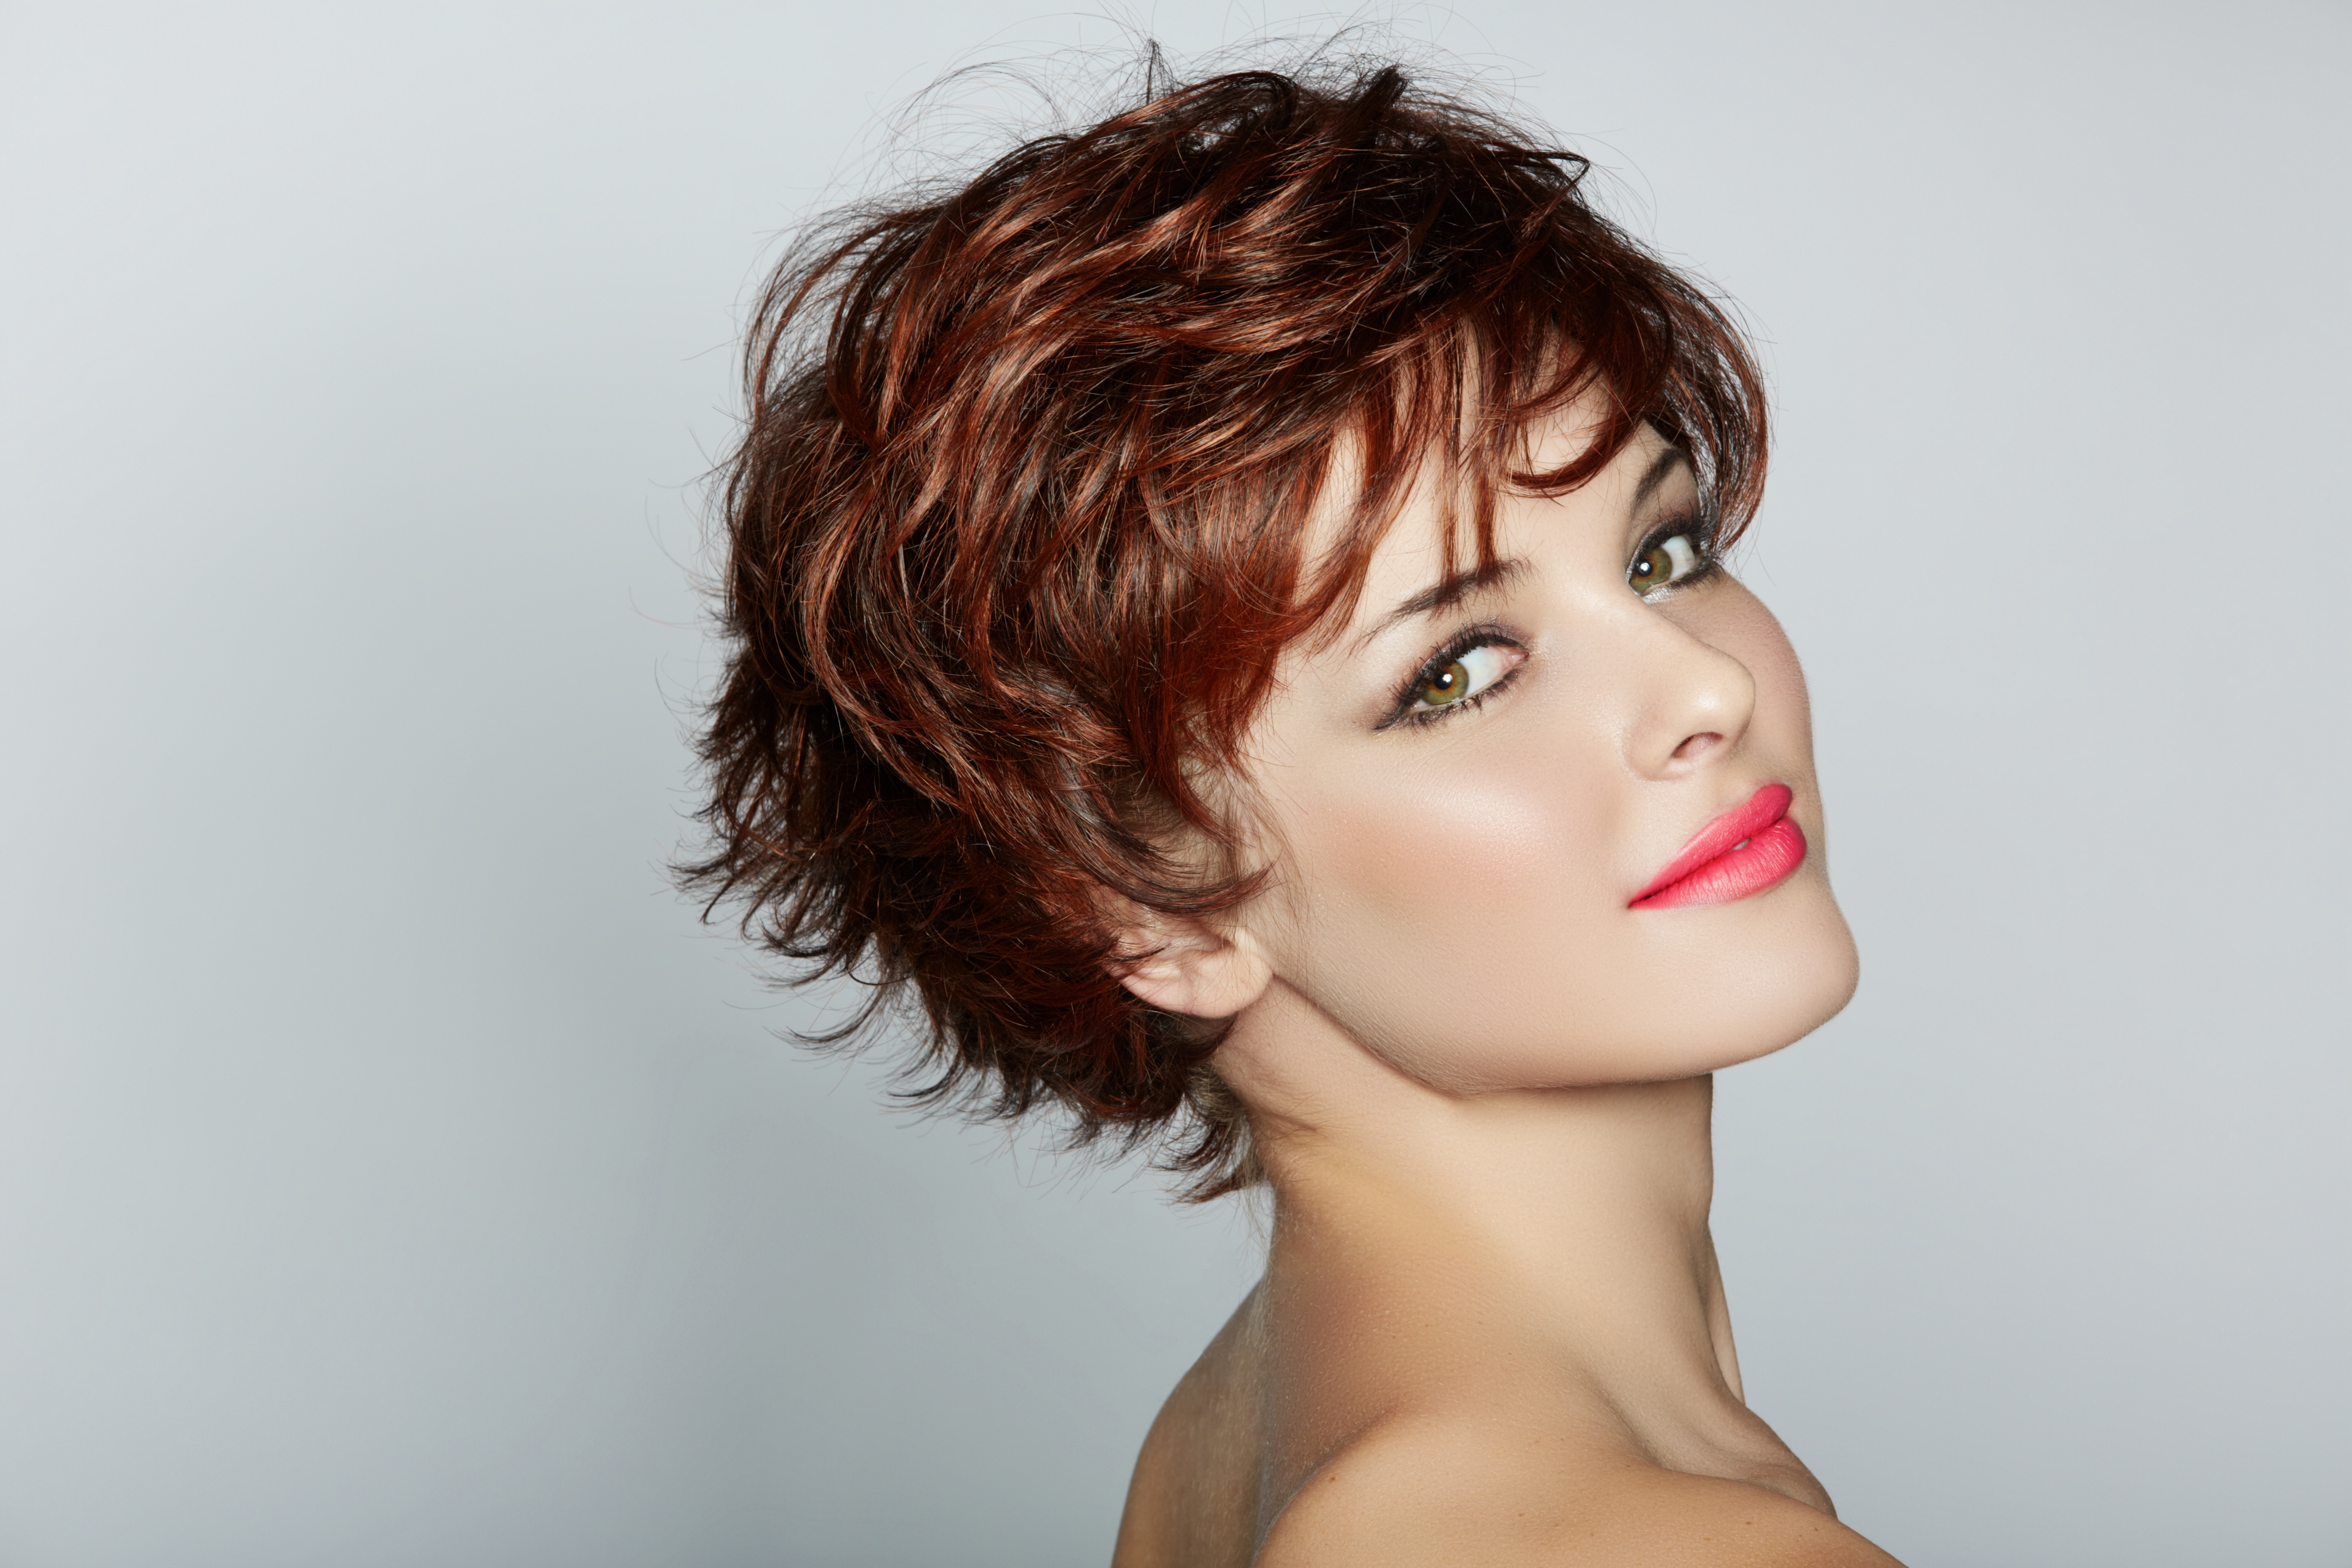 28 New Thoughts About Haircuts For Thin Curly Hair That Will Turn For Short Haircuts For Thin Wavy Hair (View 5 of 25)